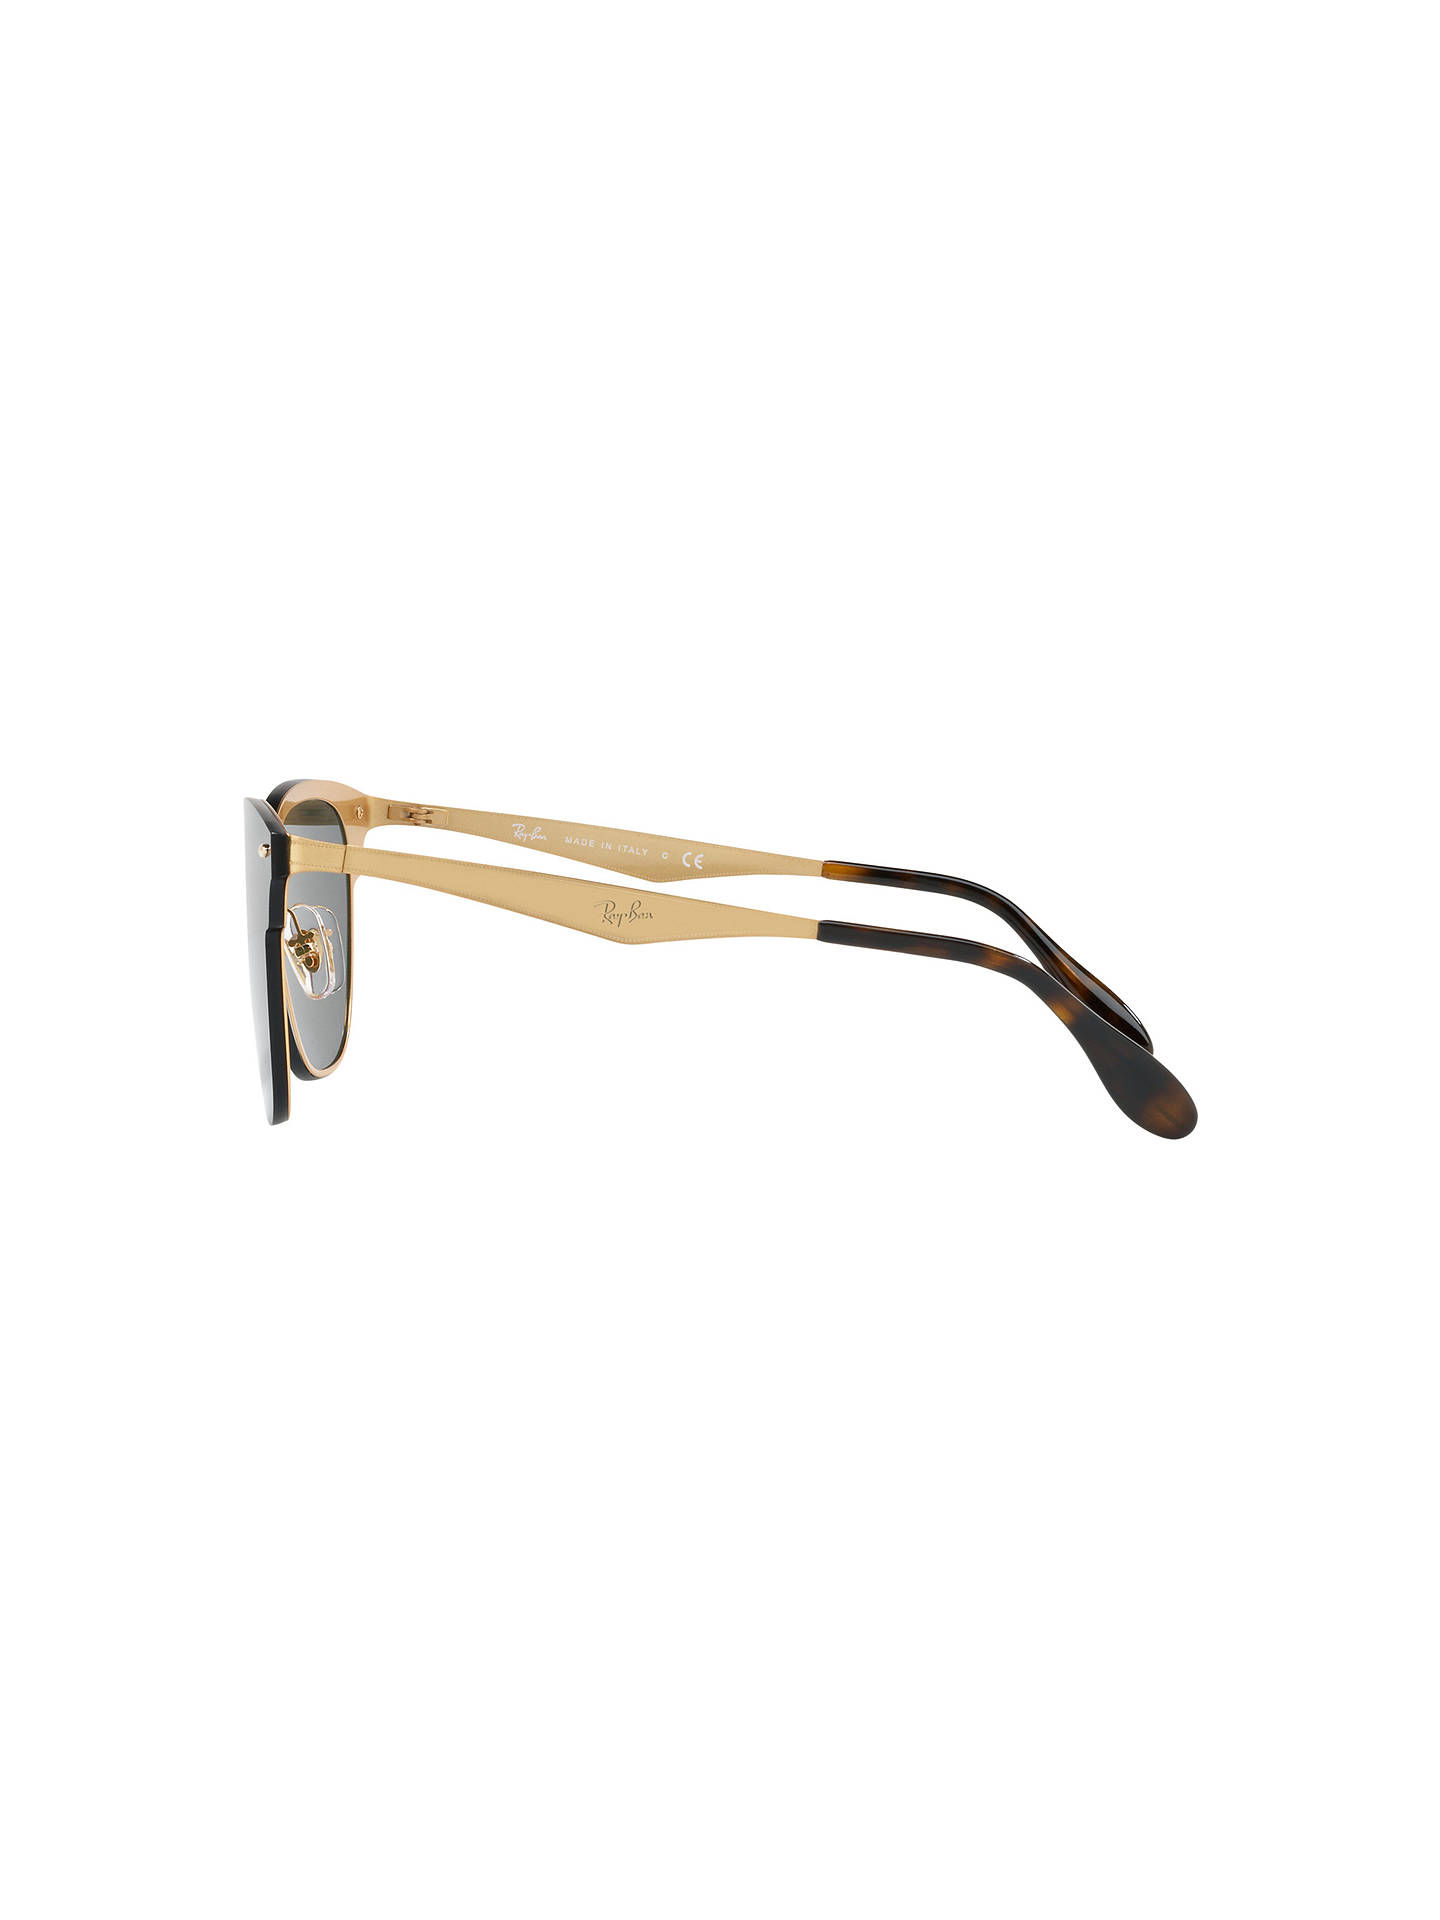 ca2e36064457 Ray-Ban RB3576N Blaze Clubmaster Square Sunglasses at John Lewis ...